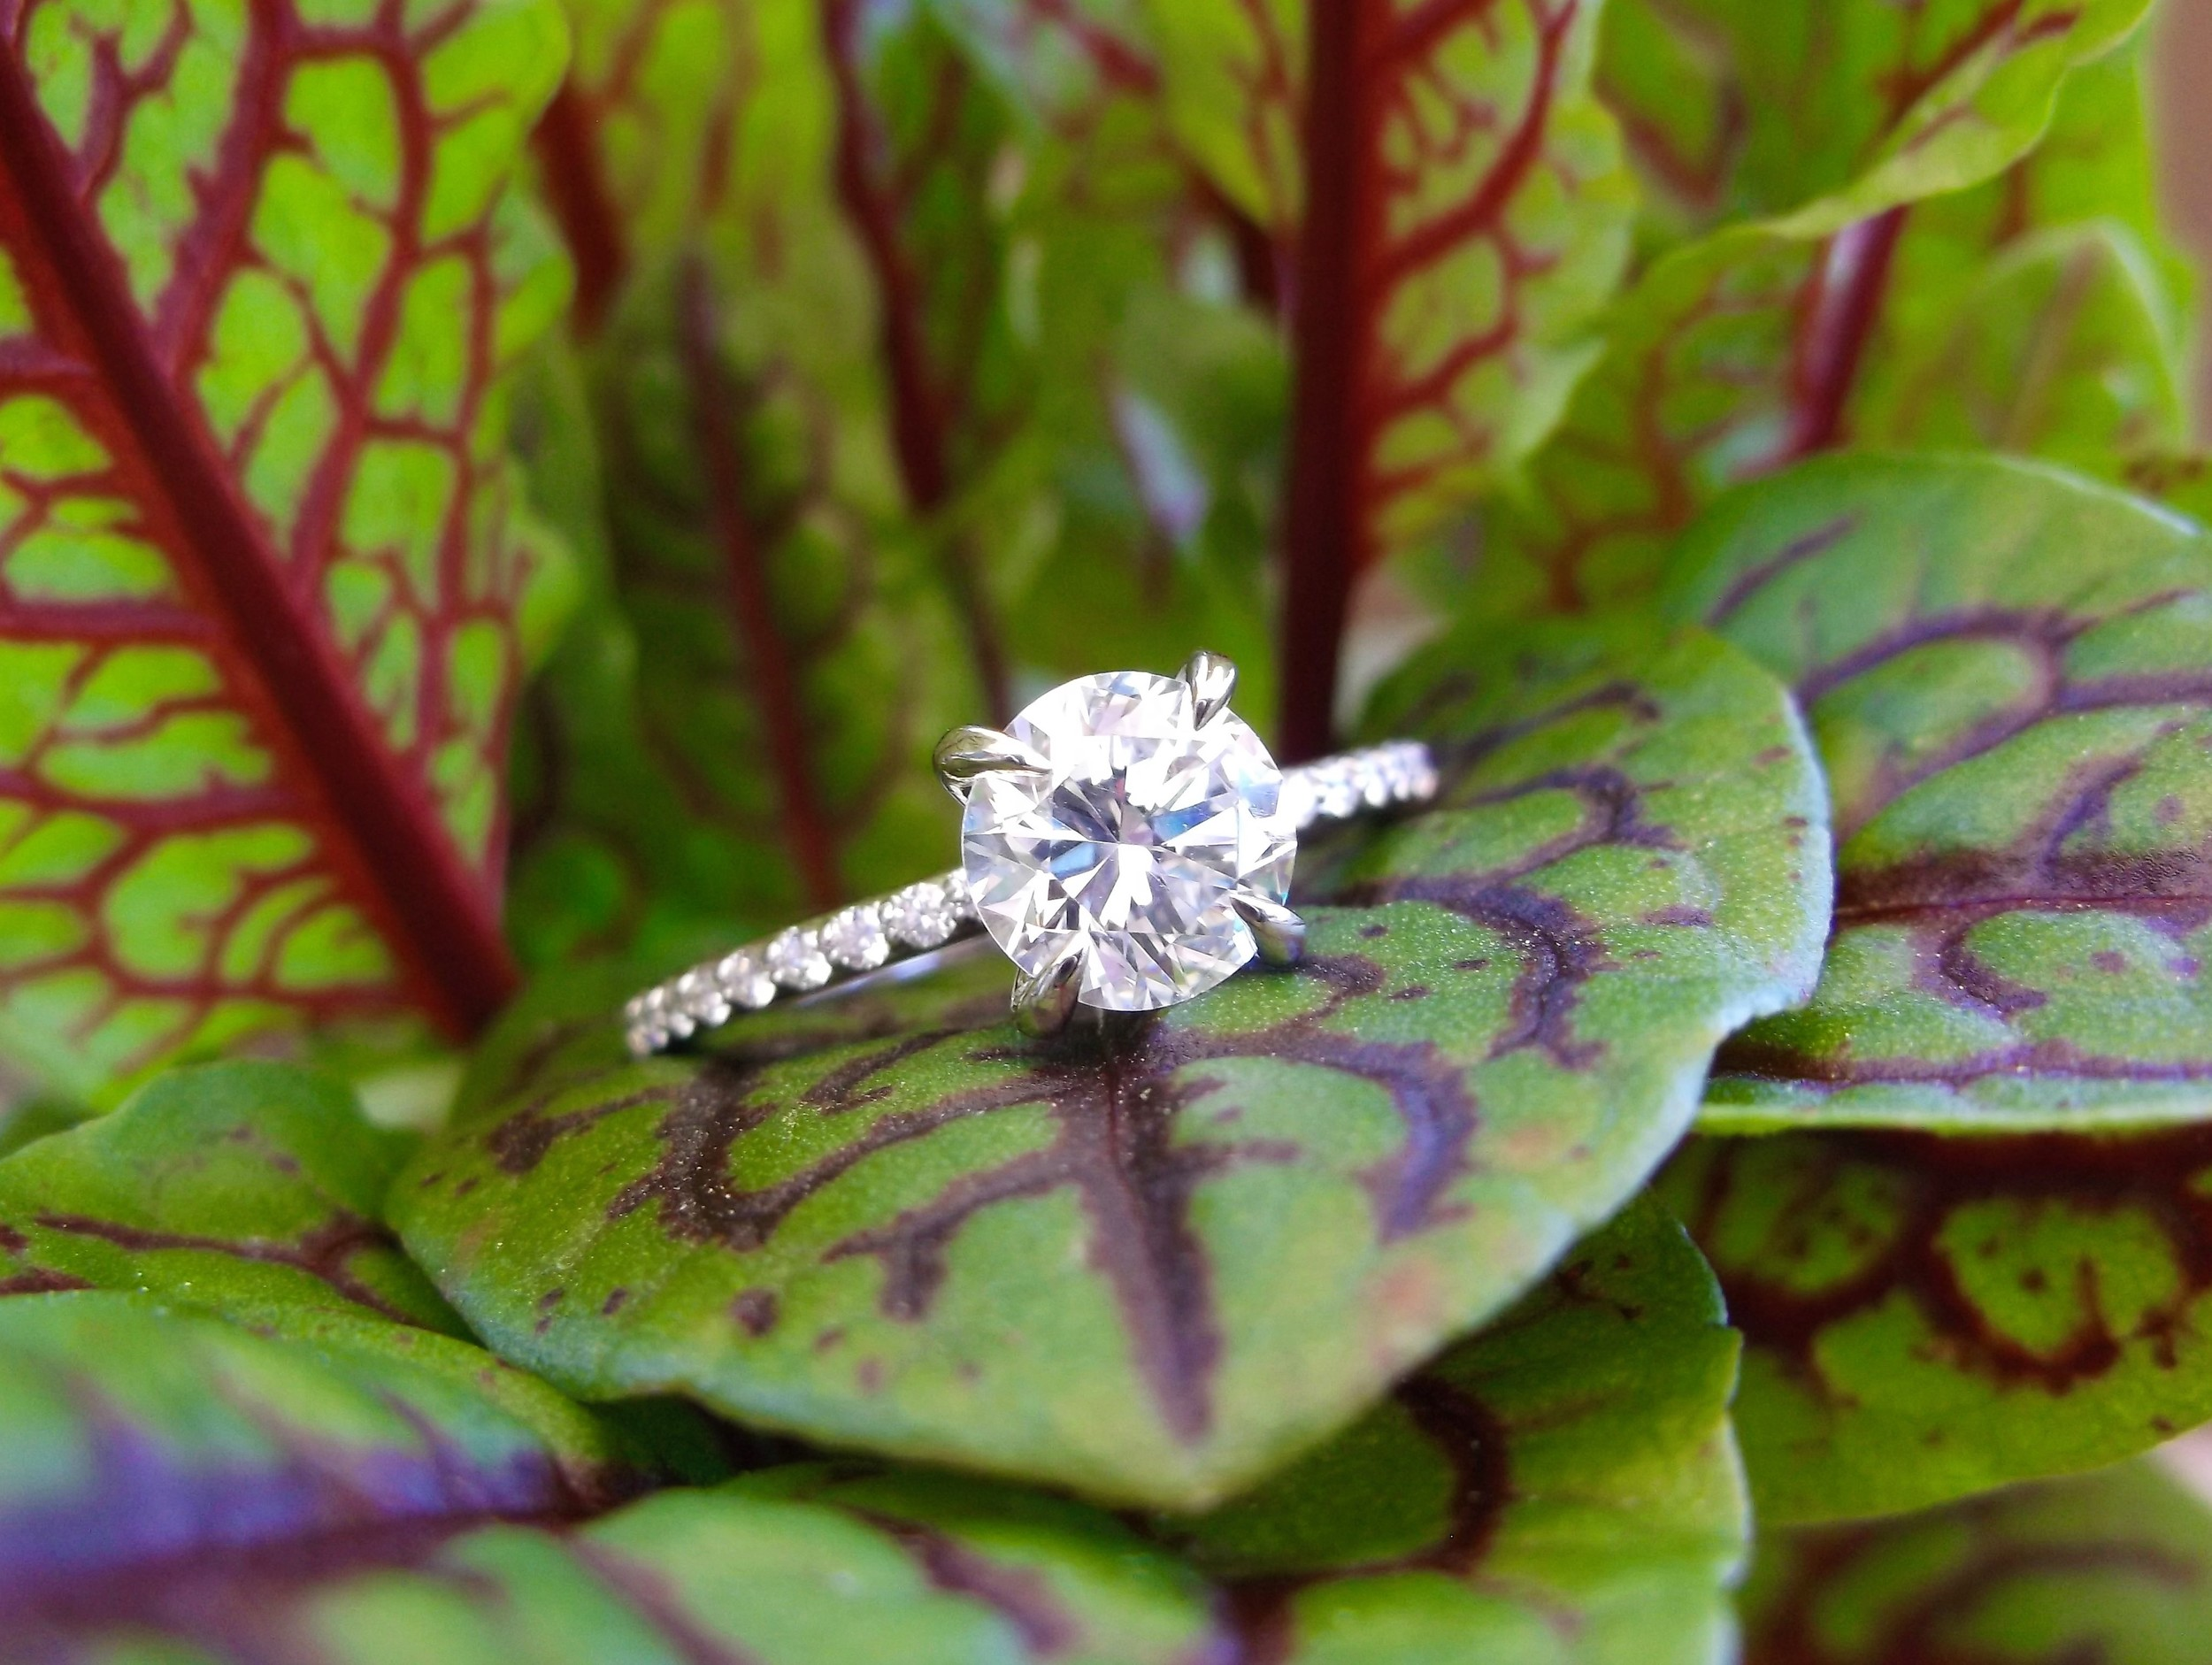 Pristine 1.12 carat round transitional cut diamond set in a dainty diamond and white gold mounting.